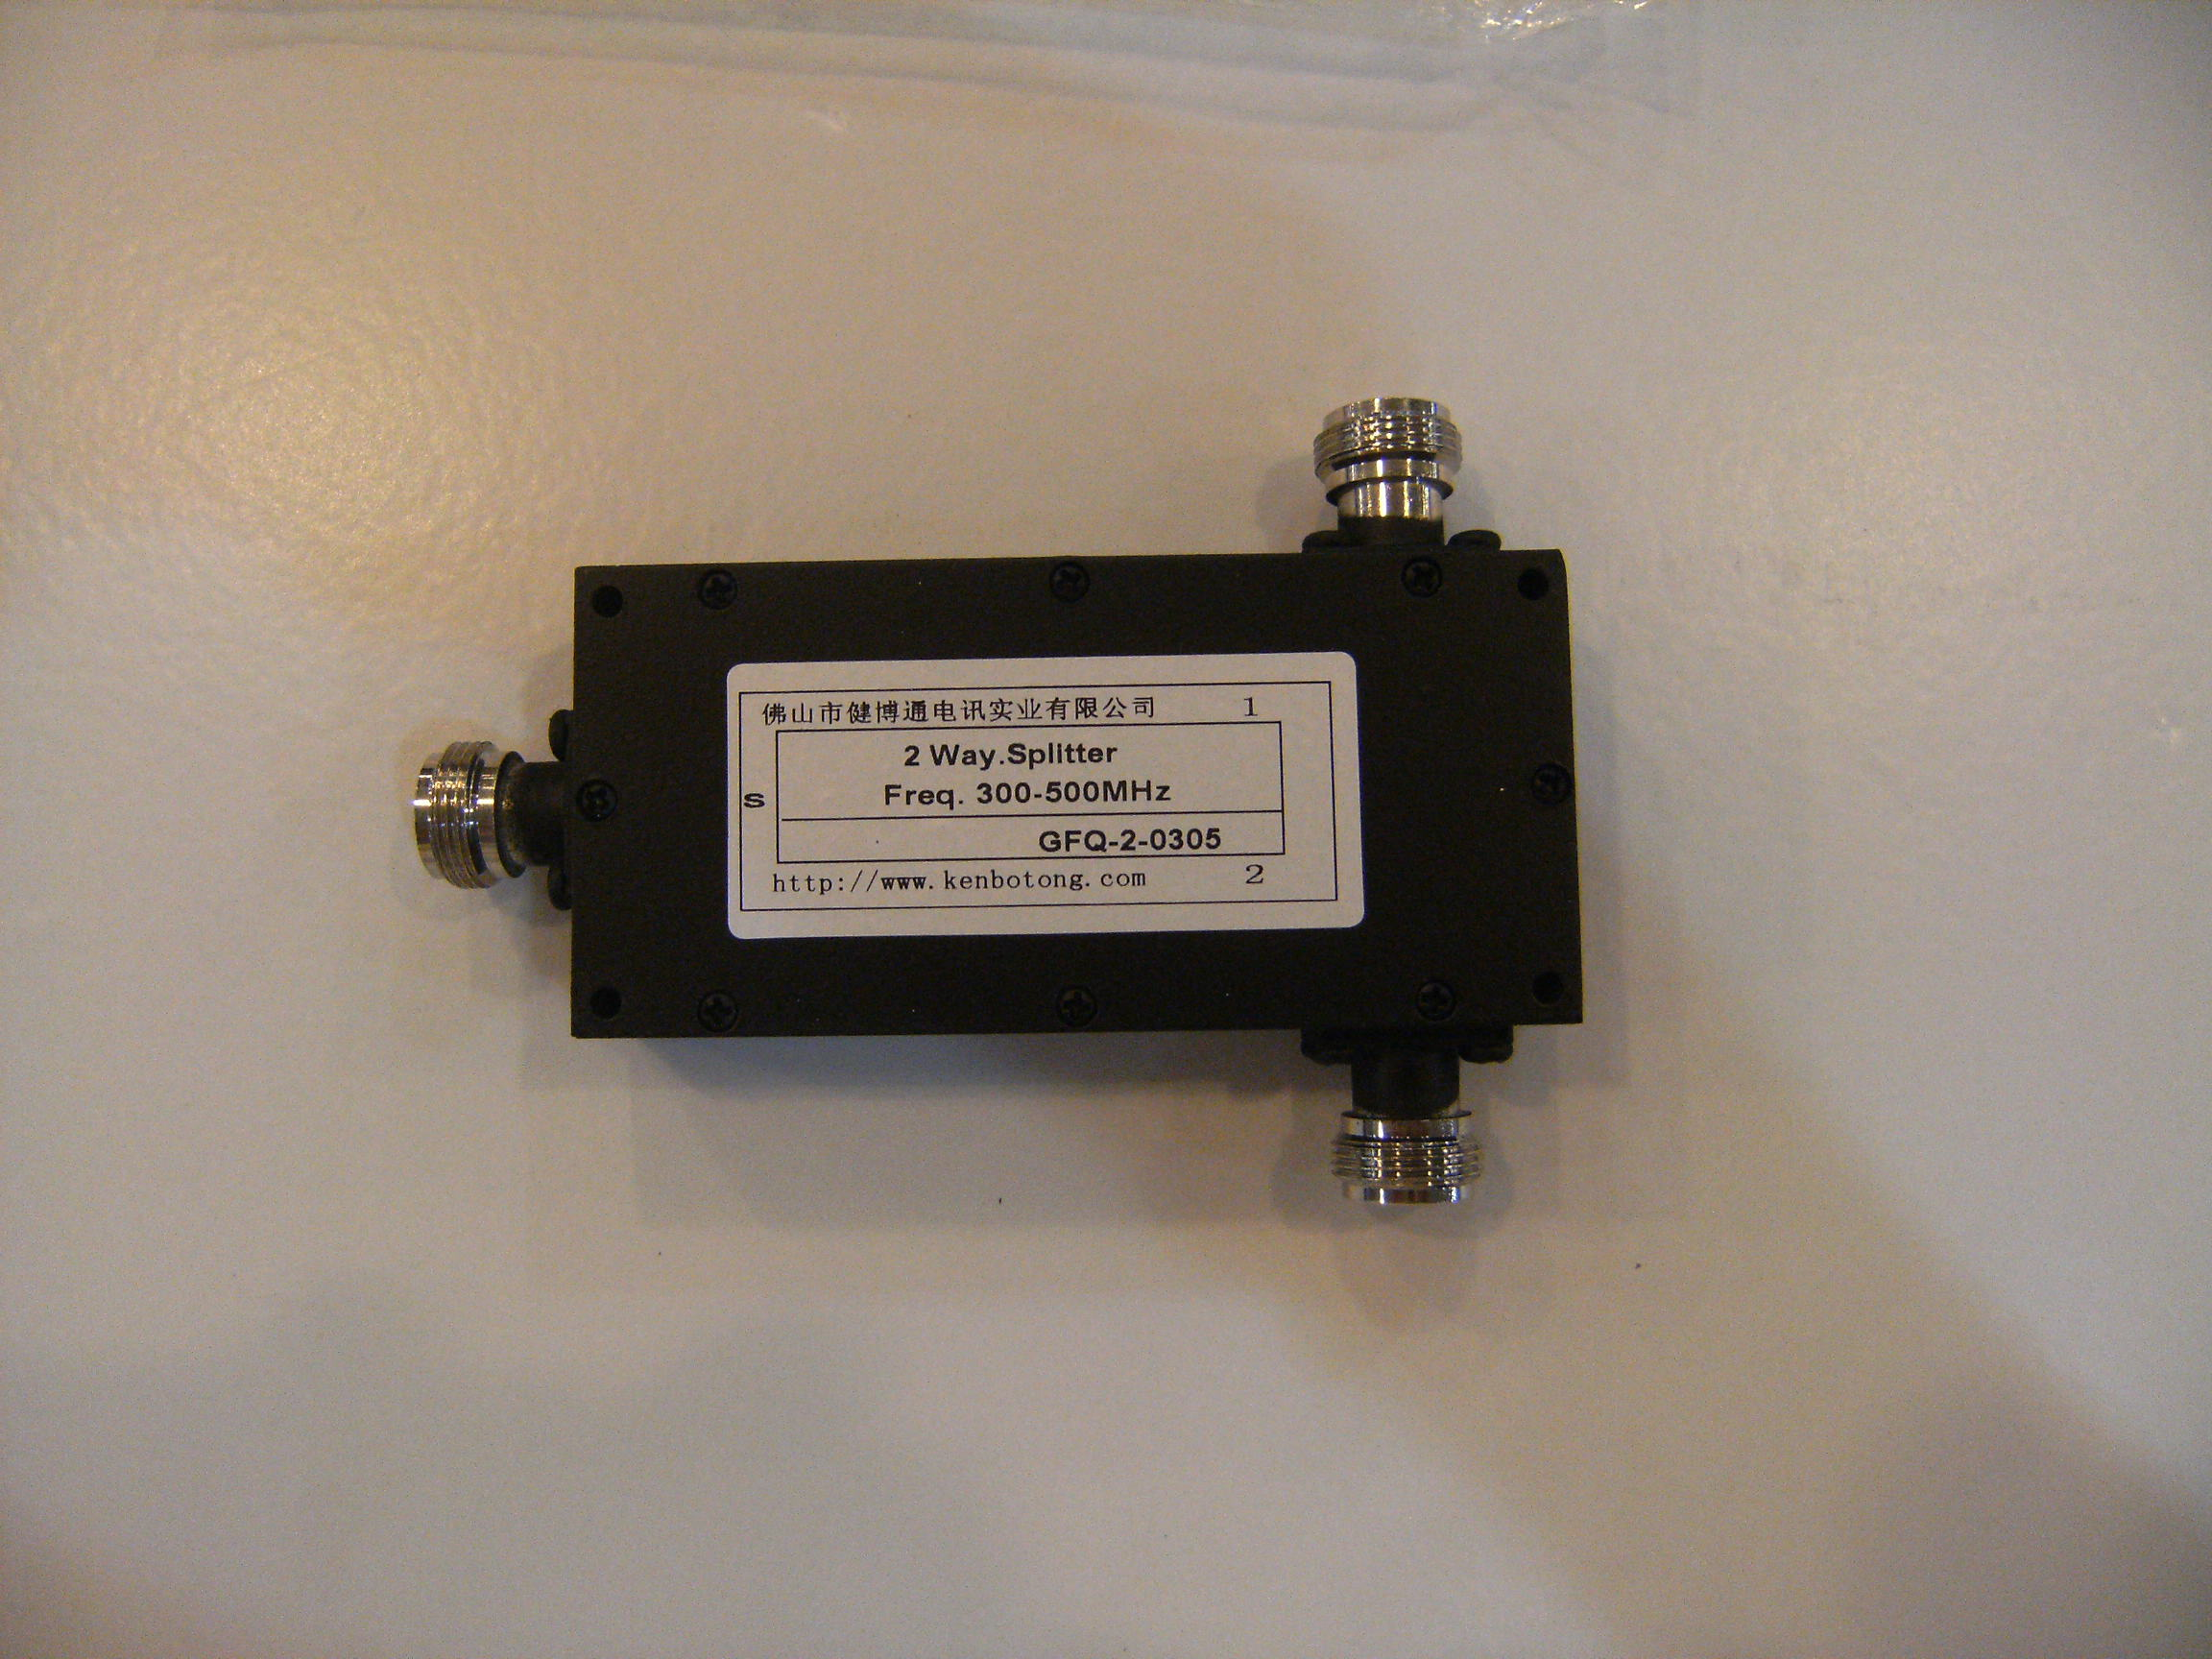 400mhz/433mhz/460 Microstrip Two Power Divider Gfq-2-0305 350-500mhz Candid